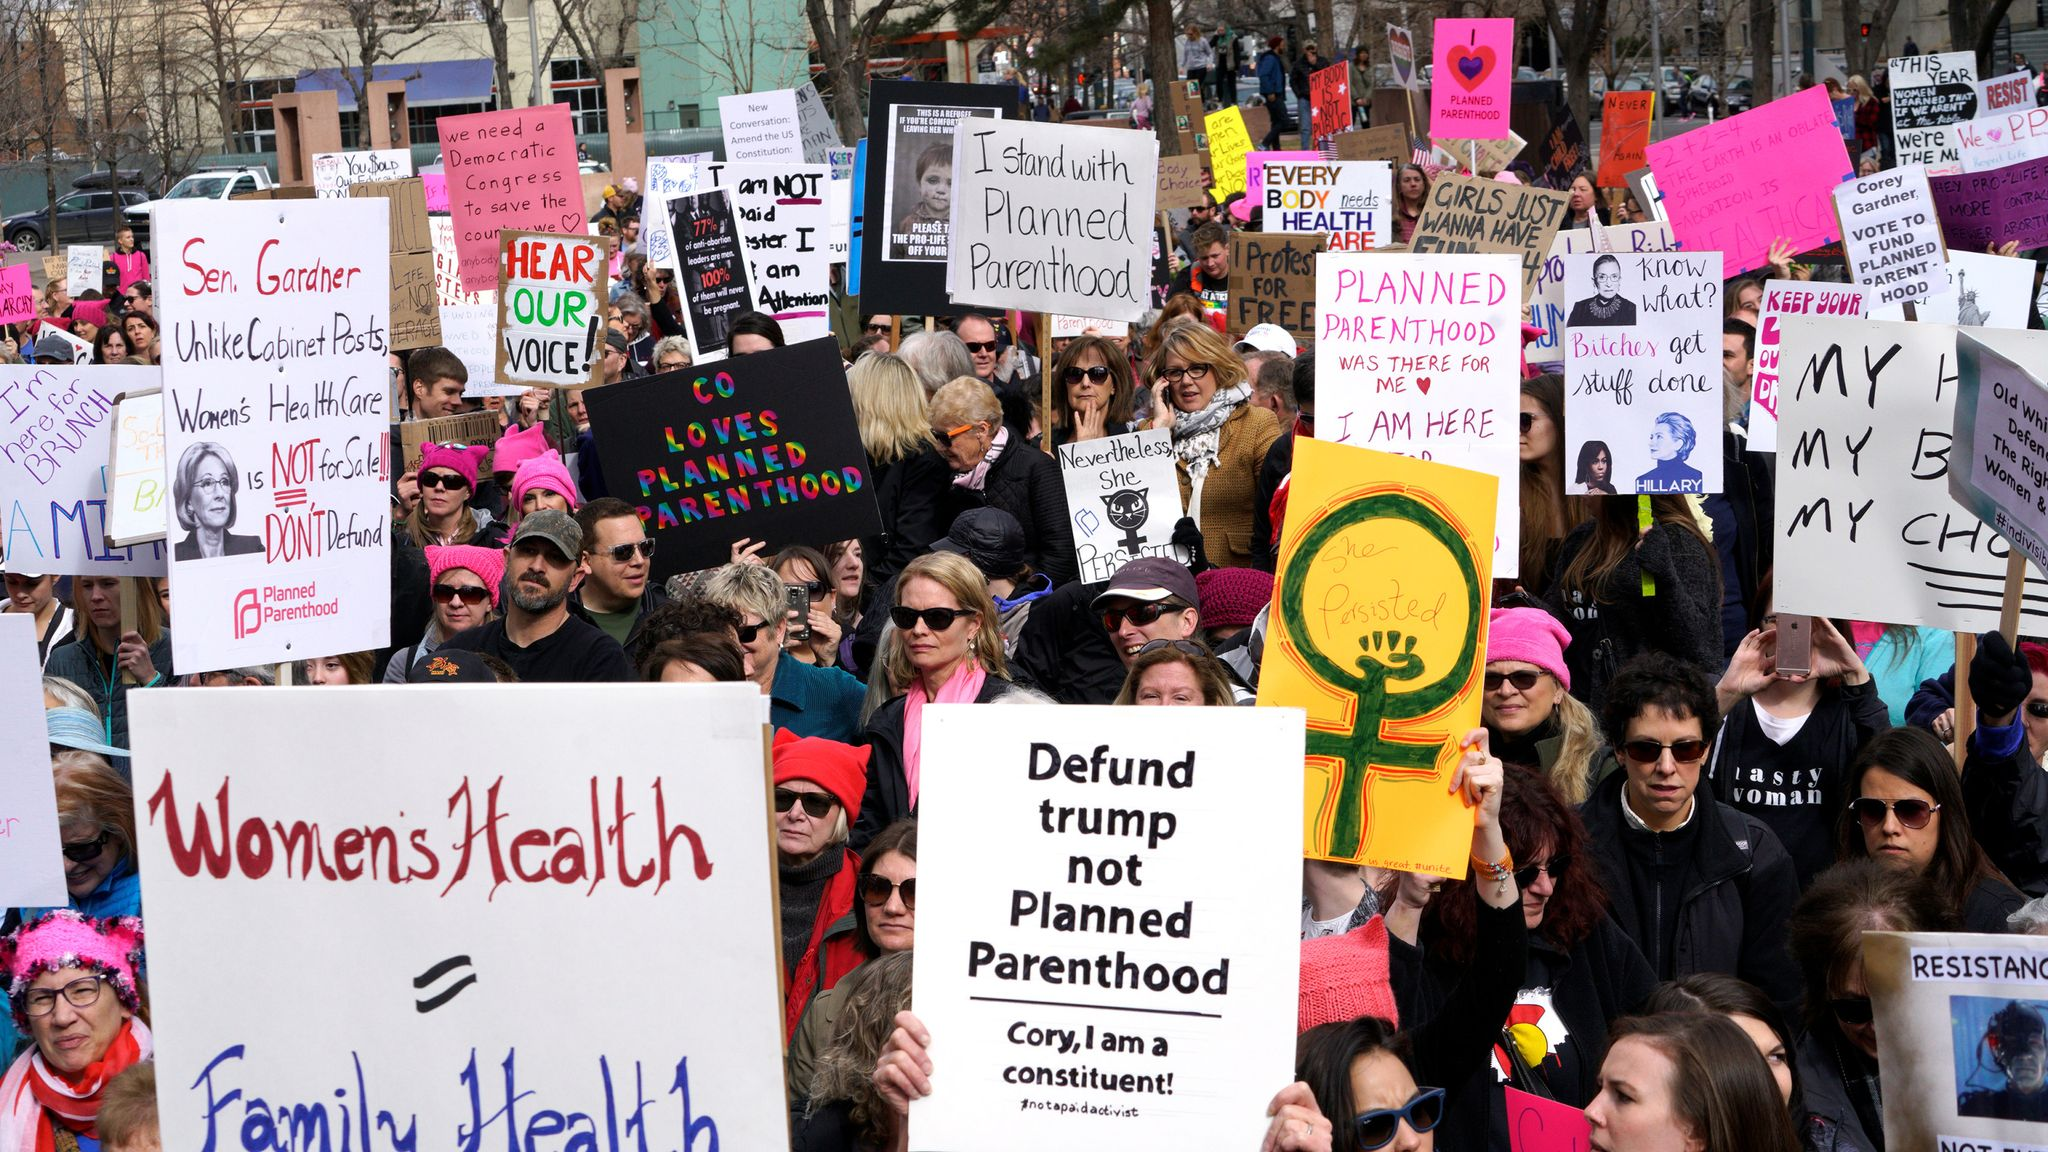 anti abortion support to women not take Women need the right to abortion if we are to achieve equality, so our movement enriquez goes on to claim that the anti-abortion movement actually empowers women, and that access to abortion is pro-life organizations claim to offer help and support to mothers and their families, yet refuse to.